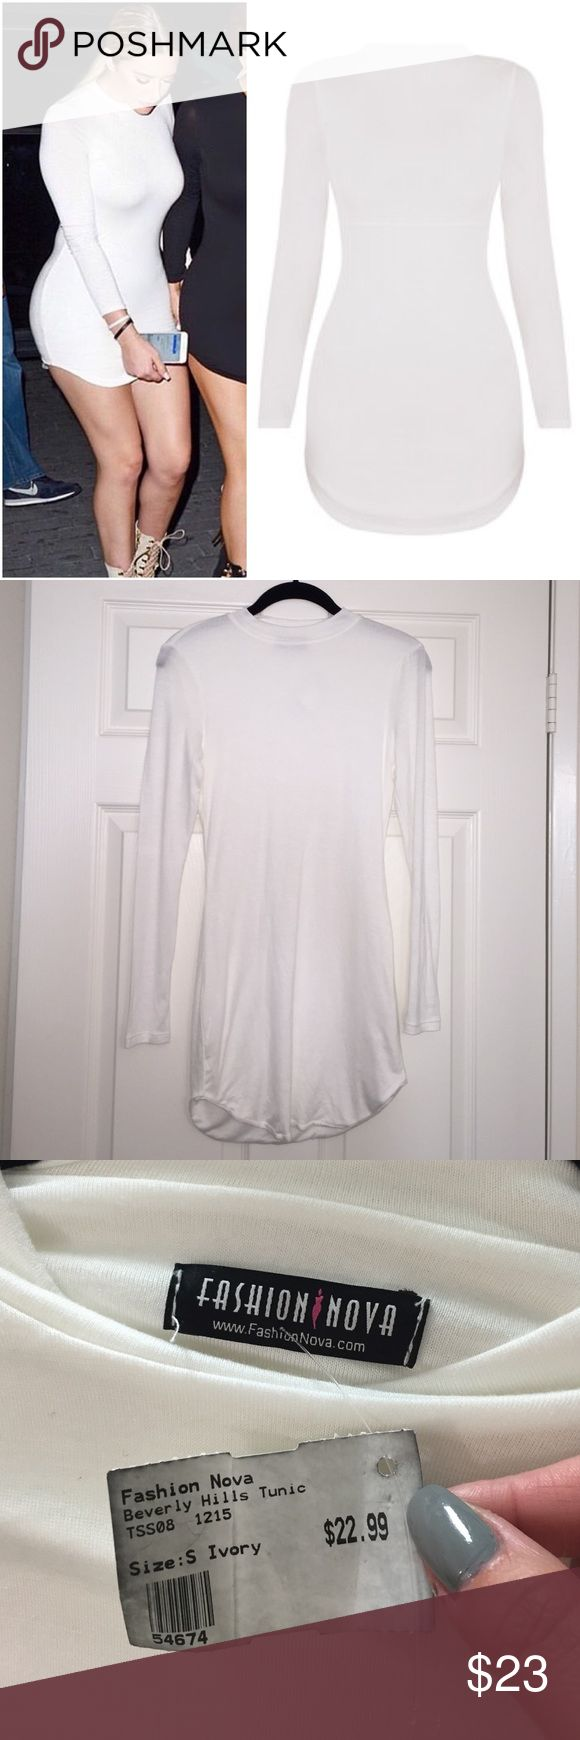 NWT Beverly Hills Tunic Fashion Nova Ivory Small S Brand new with tags. A bit too short on me. Size Small. Ivory. There is a stain on the back of one of the sleeves. Not really sure what happened there but I noticed it while taking these photos. Not super noticeable since its on the inside back of the sleeve but def needs mentioning. It may come out in the wash but I can't be sure. Be careful these do shrink! Line dry!! (I have them in black too that I've worn so that's how I know 🙈) Body…